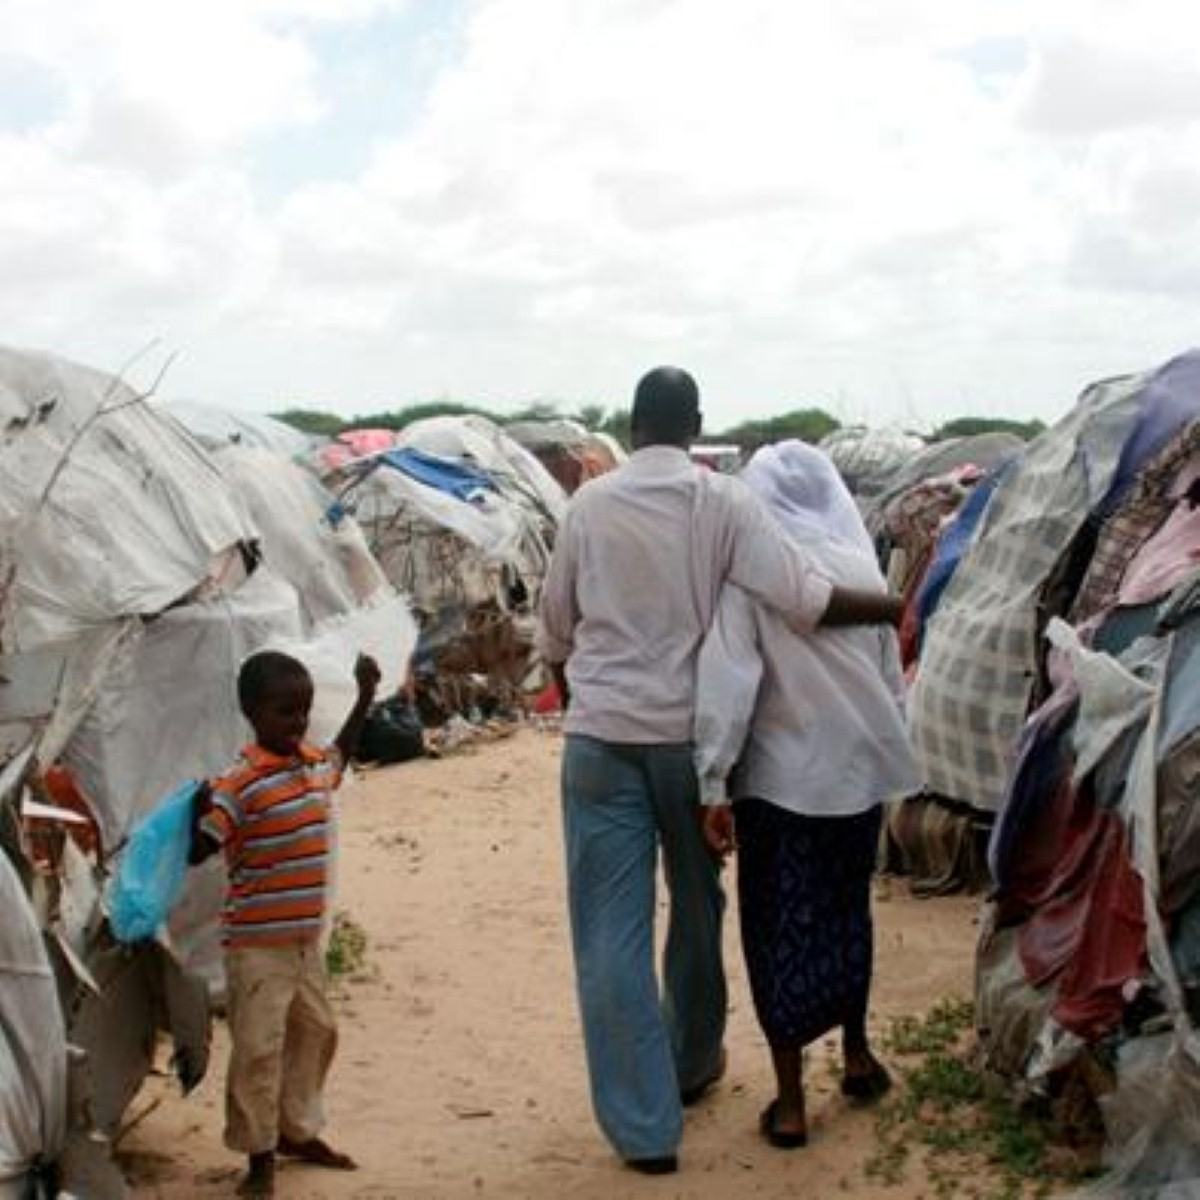 Somalia faces a growing crisis, Andrew Mitchell has warned